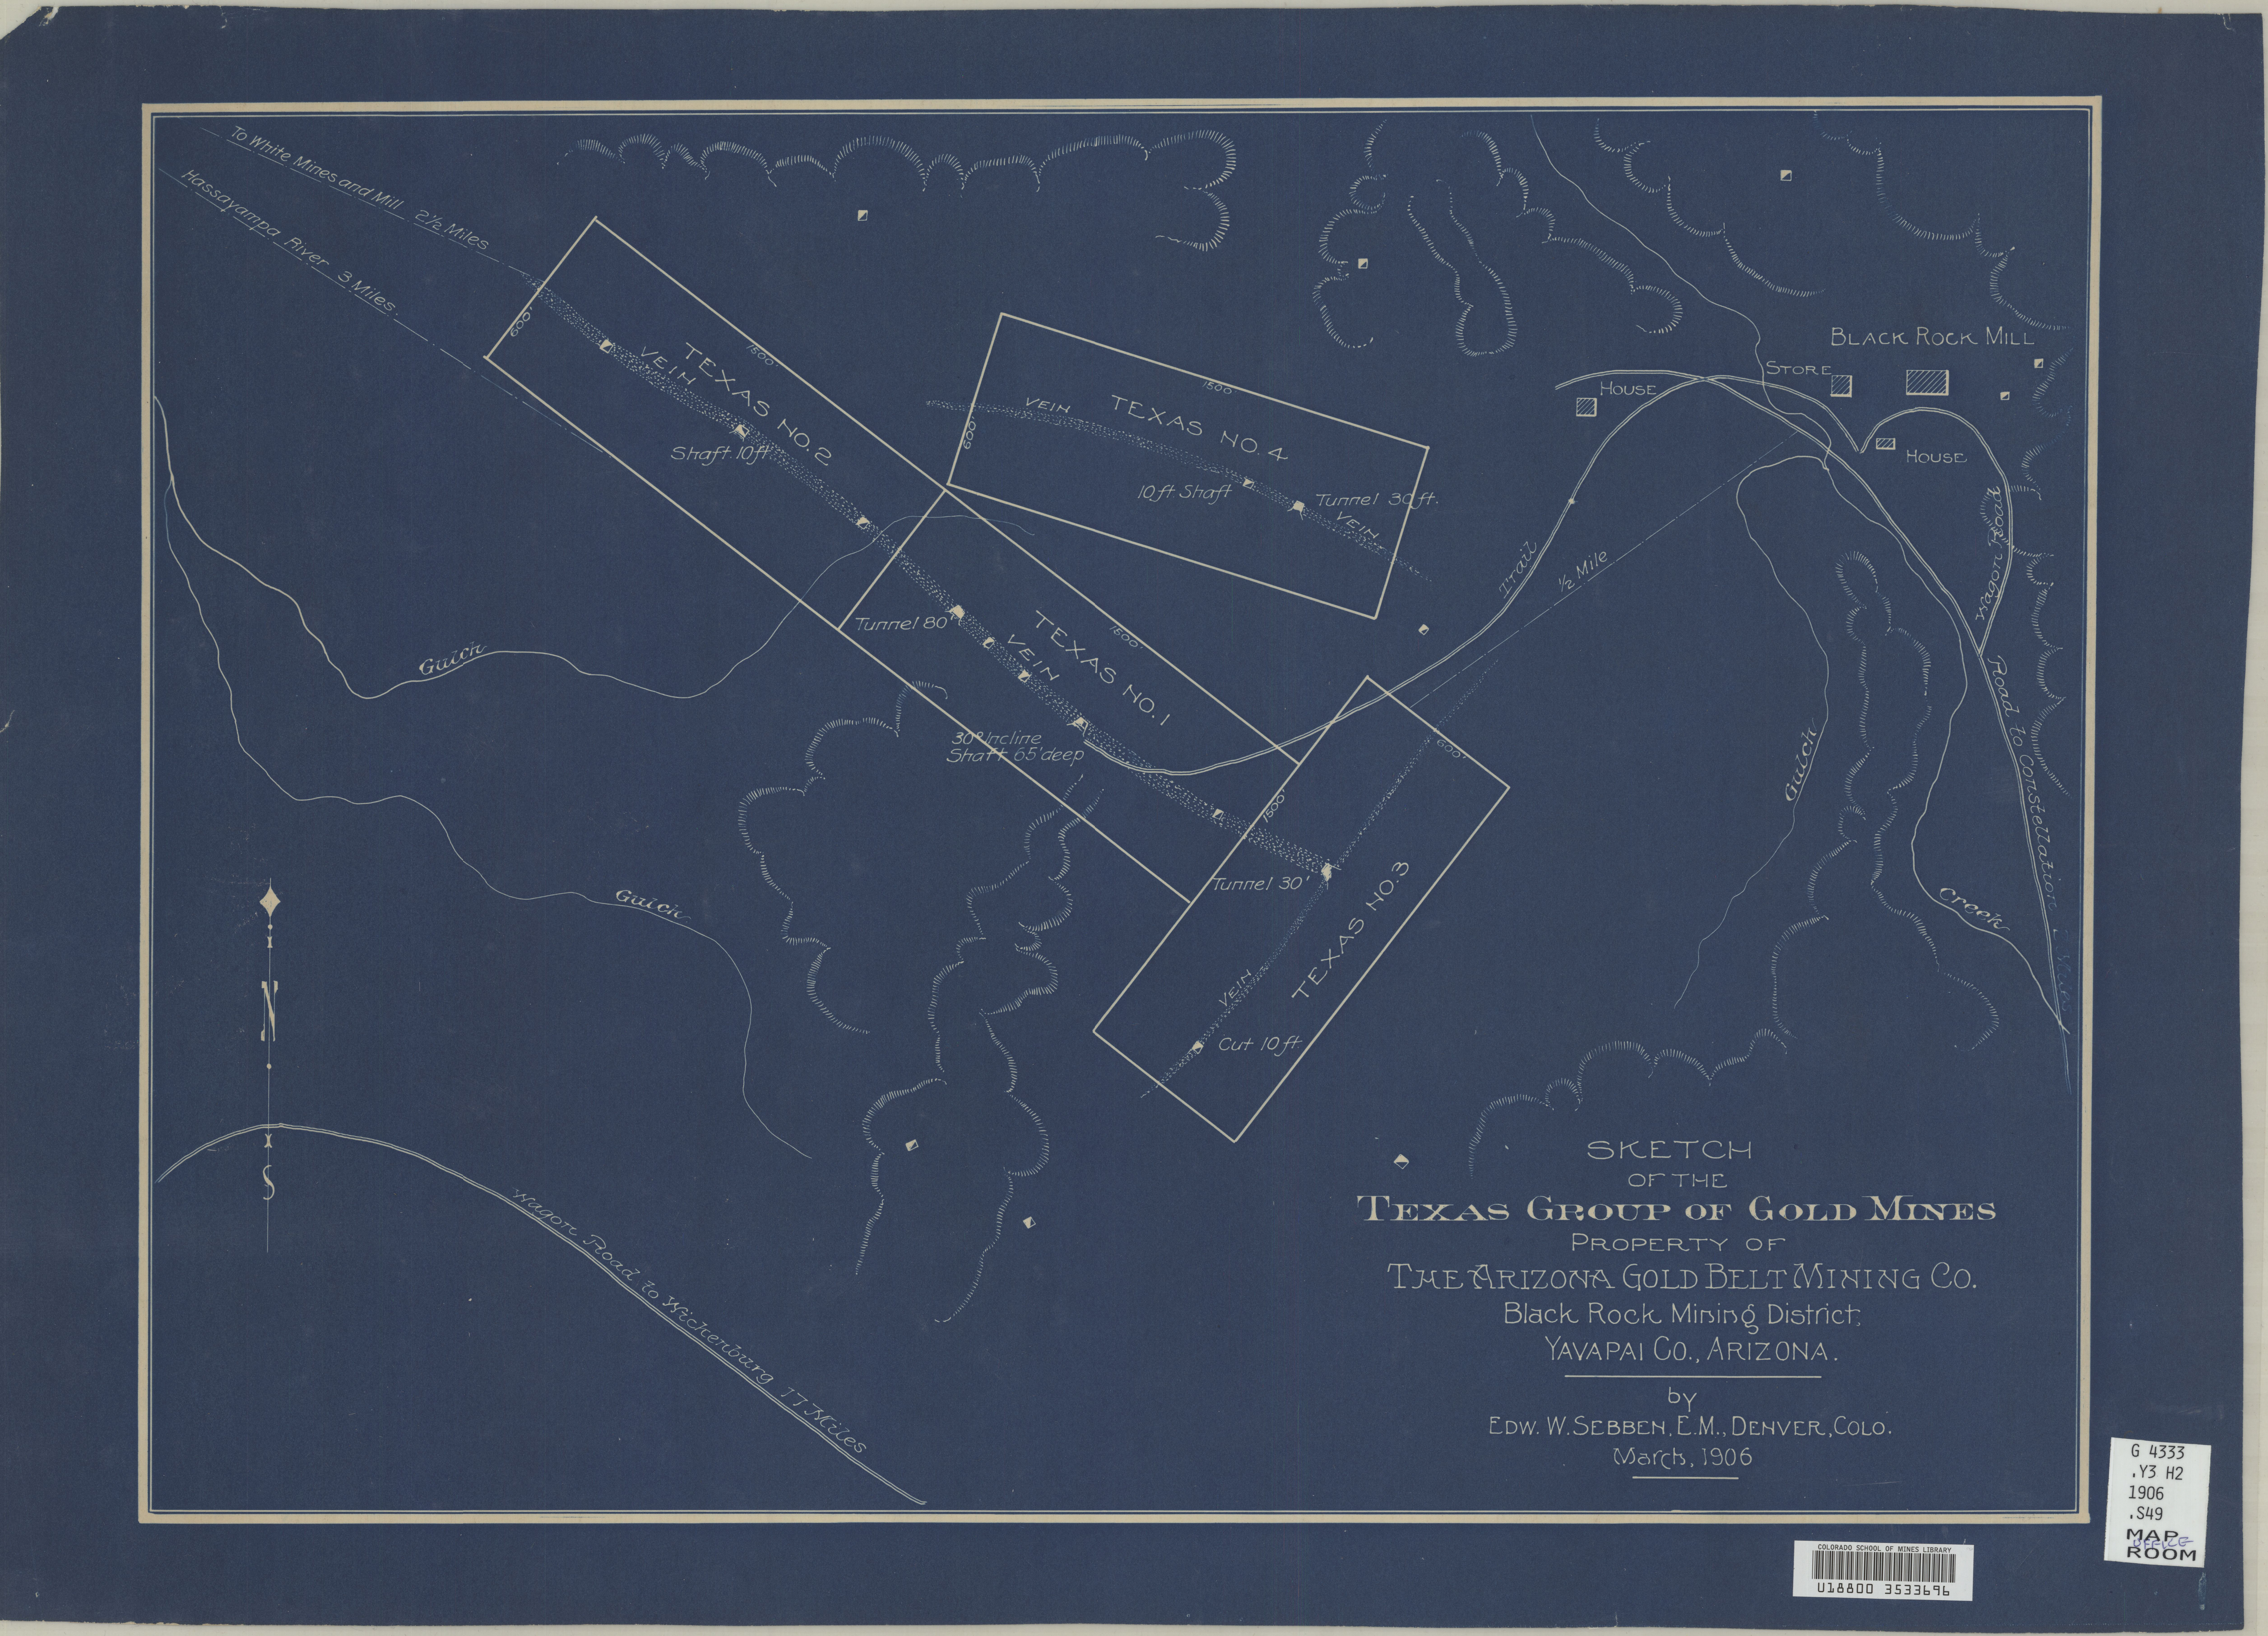 Sketch map of the Texas Group of gold mines, property of the